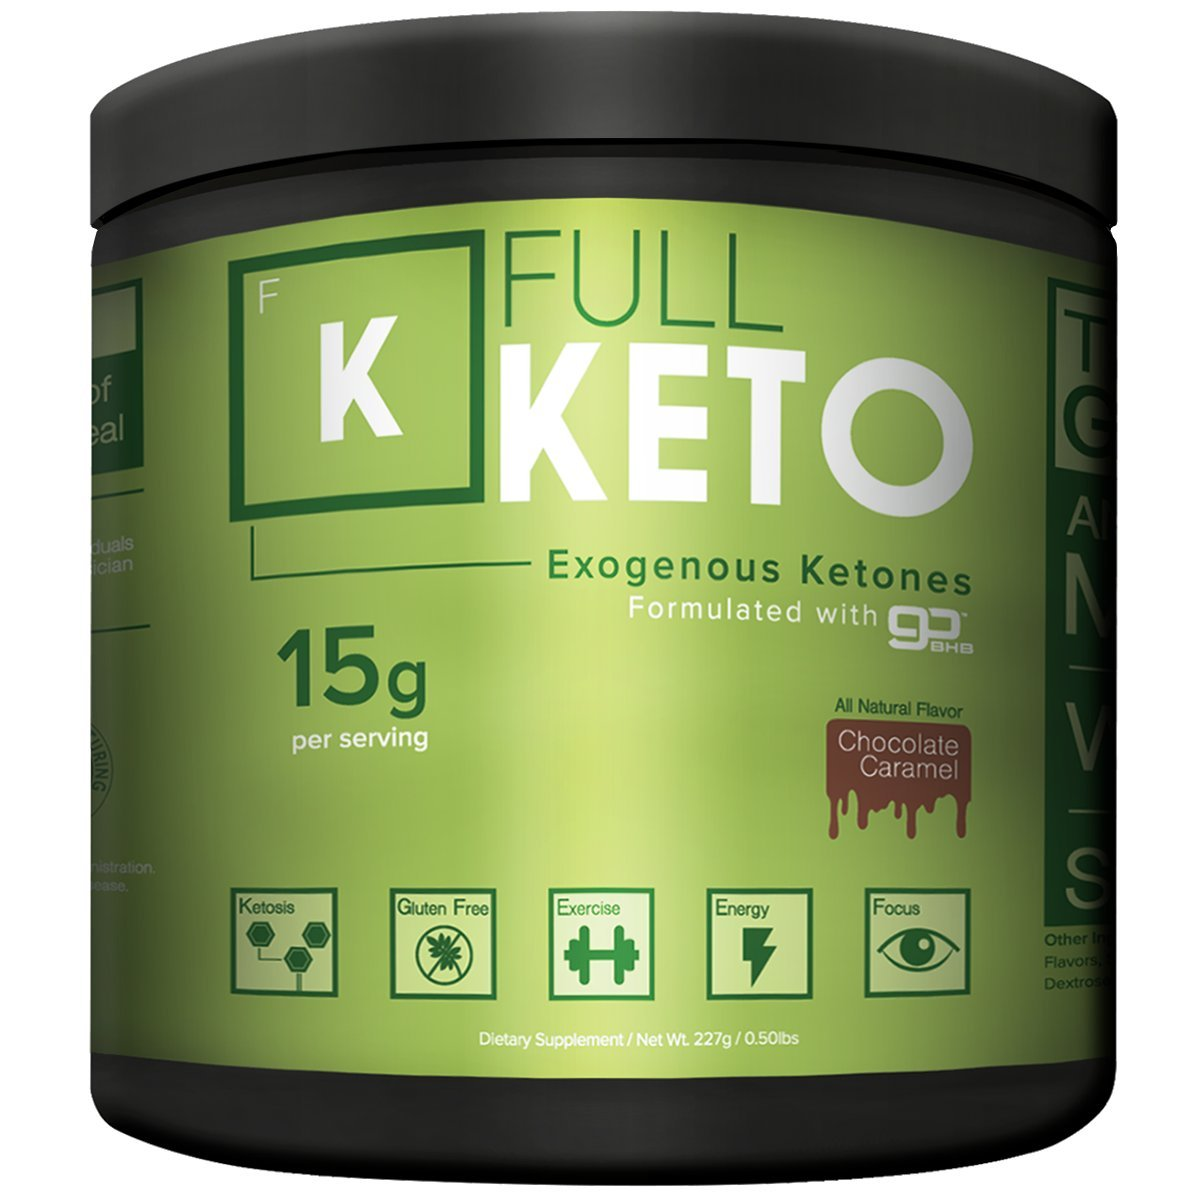 Exogenous Ketones Supplement Full Keto 15g Per Serving 15 Minutes to Ketosis Chef Formulated Chocolate Flavor Beats Every Taste Test